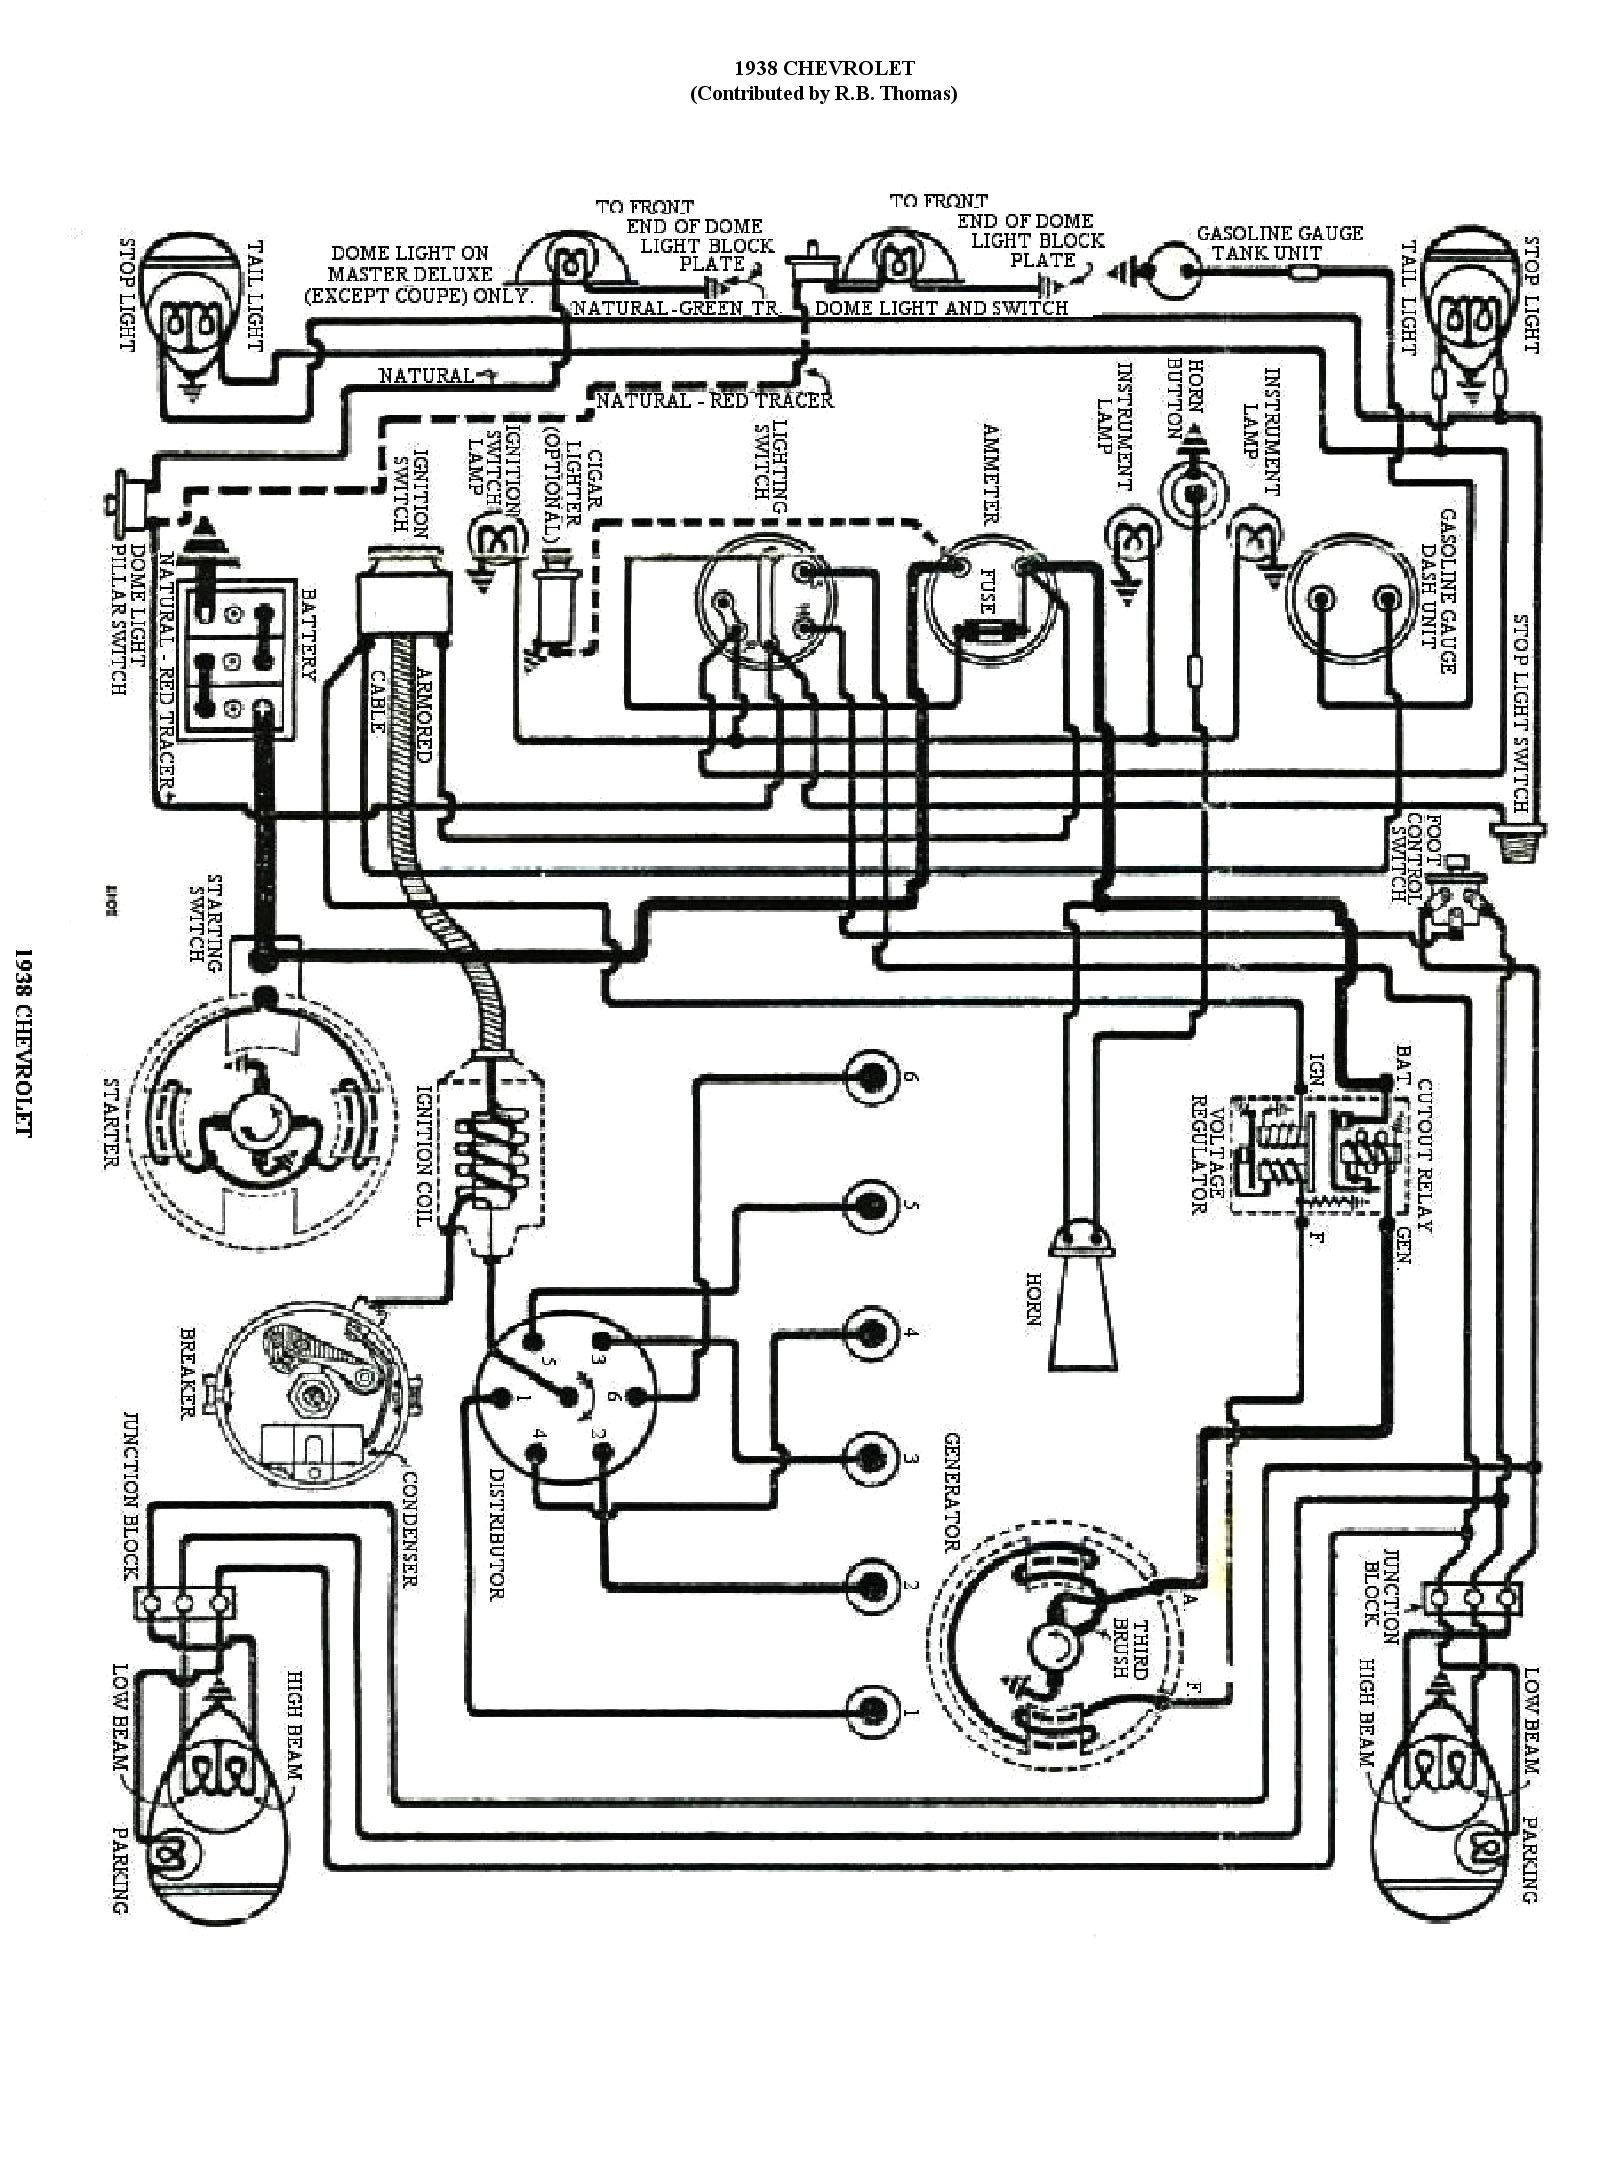 38wiring chevy wiring diagrams 6 volt universal wiring harness at crackthecode.co